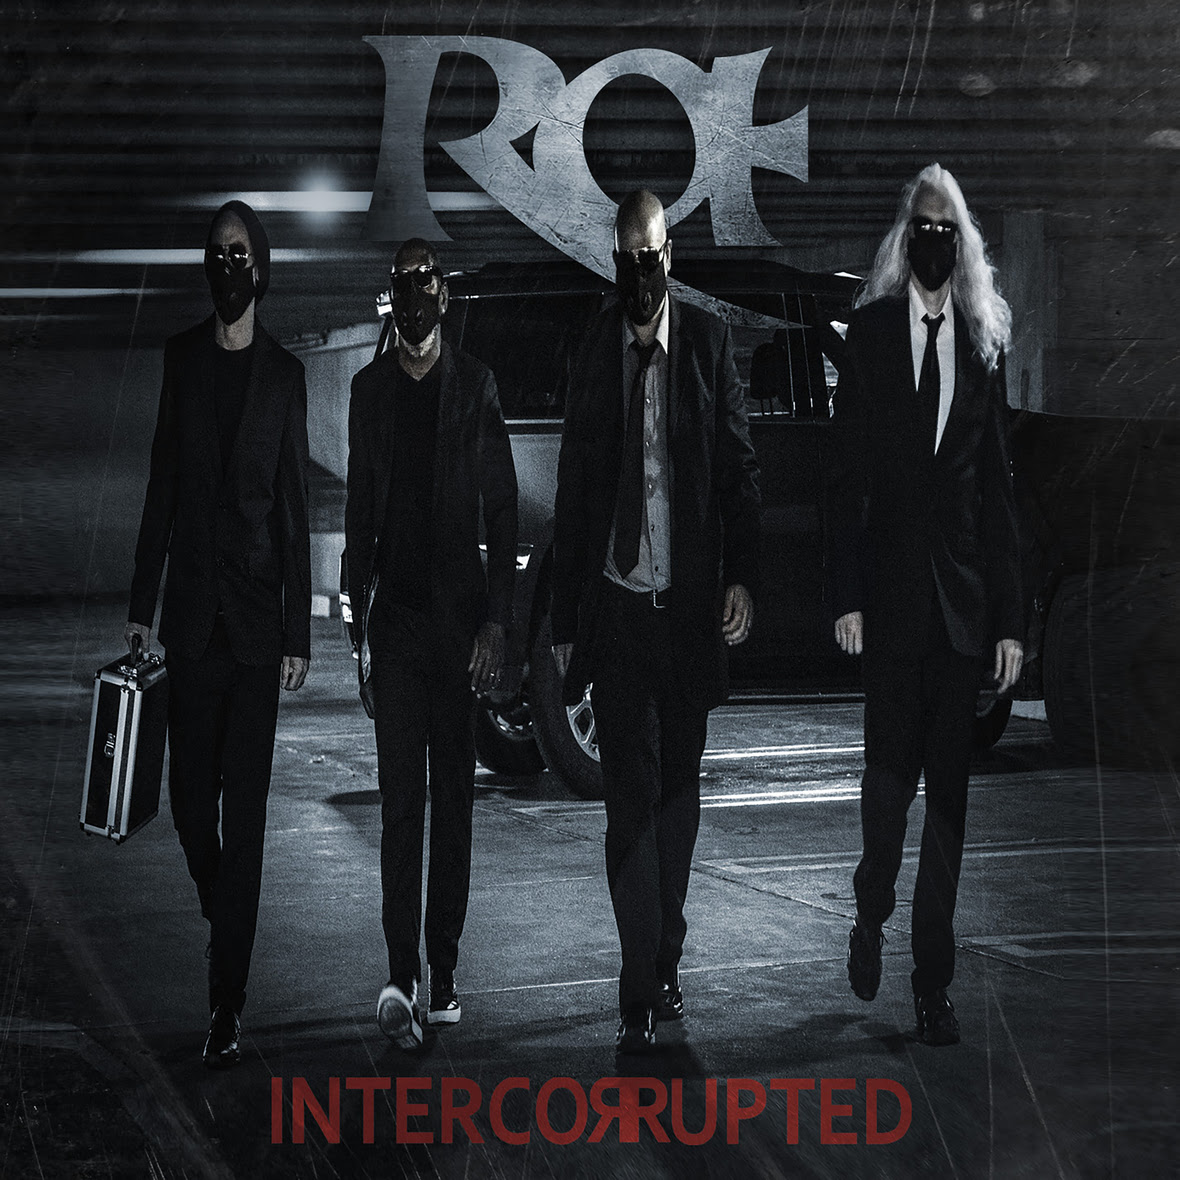 Ra-Intercorrupted